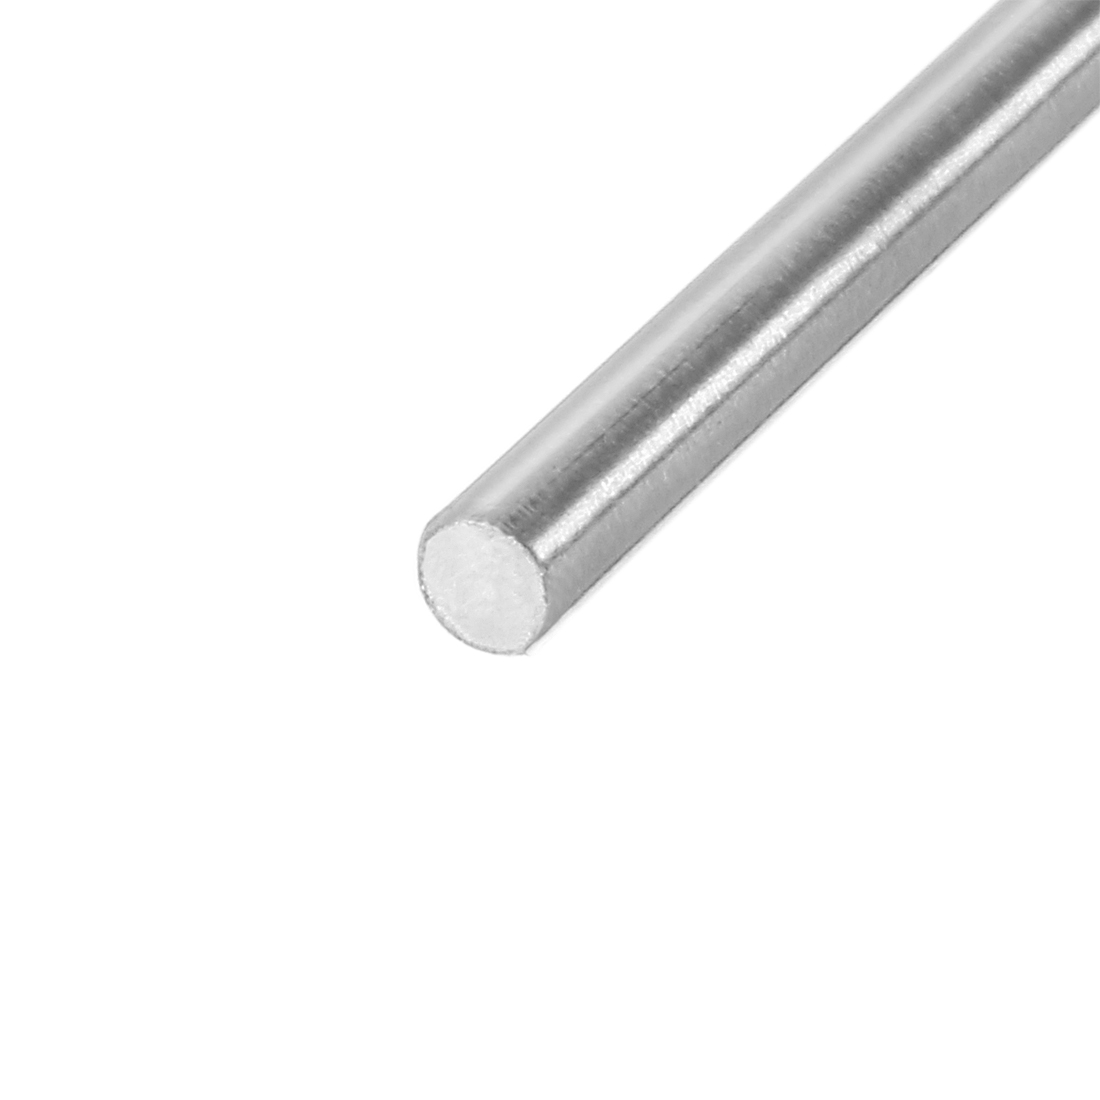 2mm Dia 100mm Length Stainless Steel Solid Round Shaft Rod for RC Model Toy - image 1 of 3